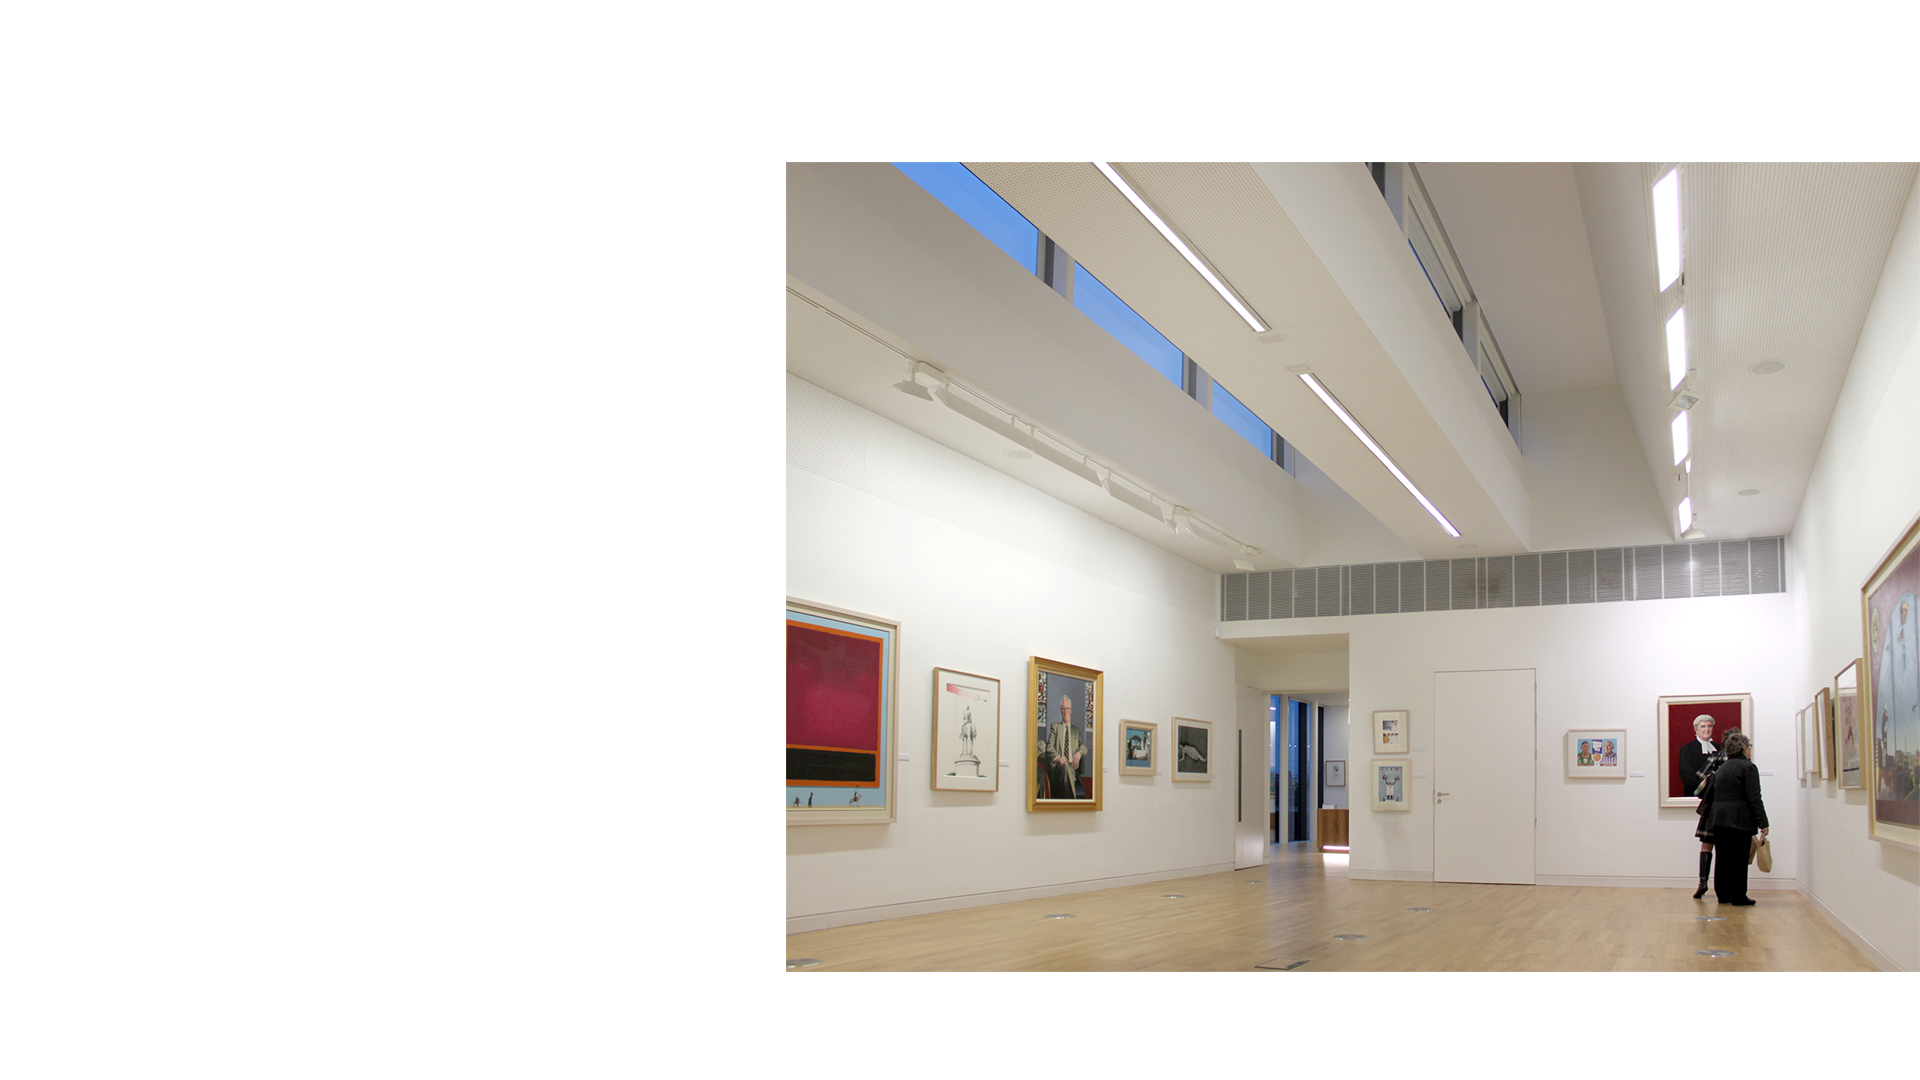 Top lit exhibition gallery in the new wing at the Luan Gallery, Athlone